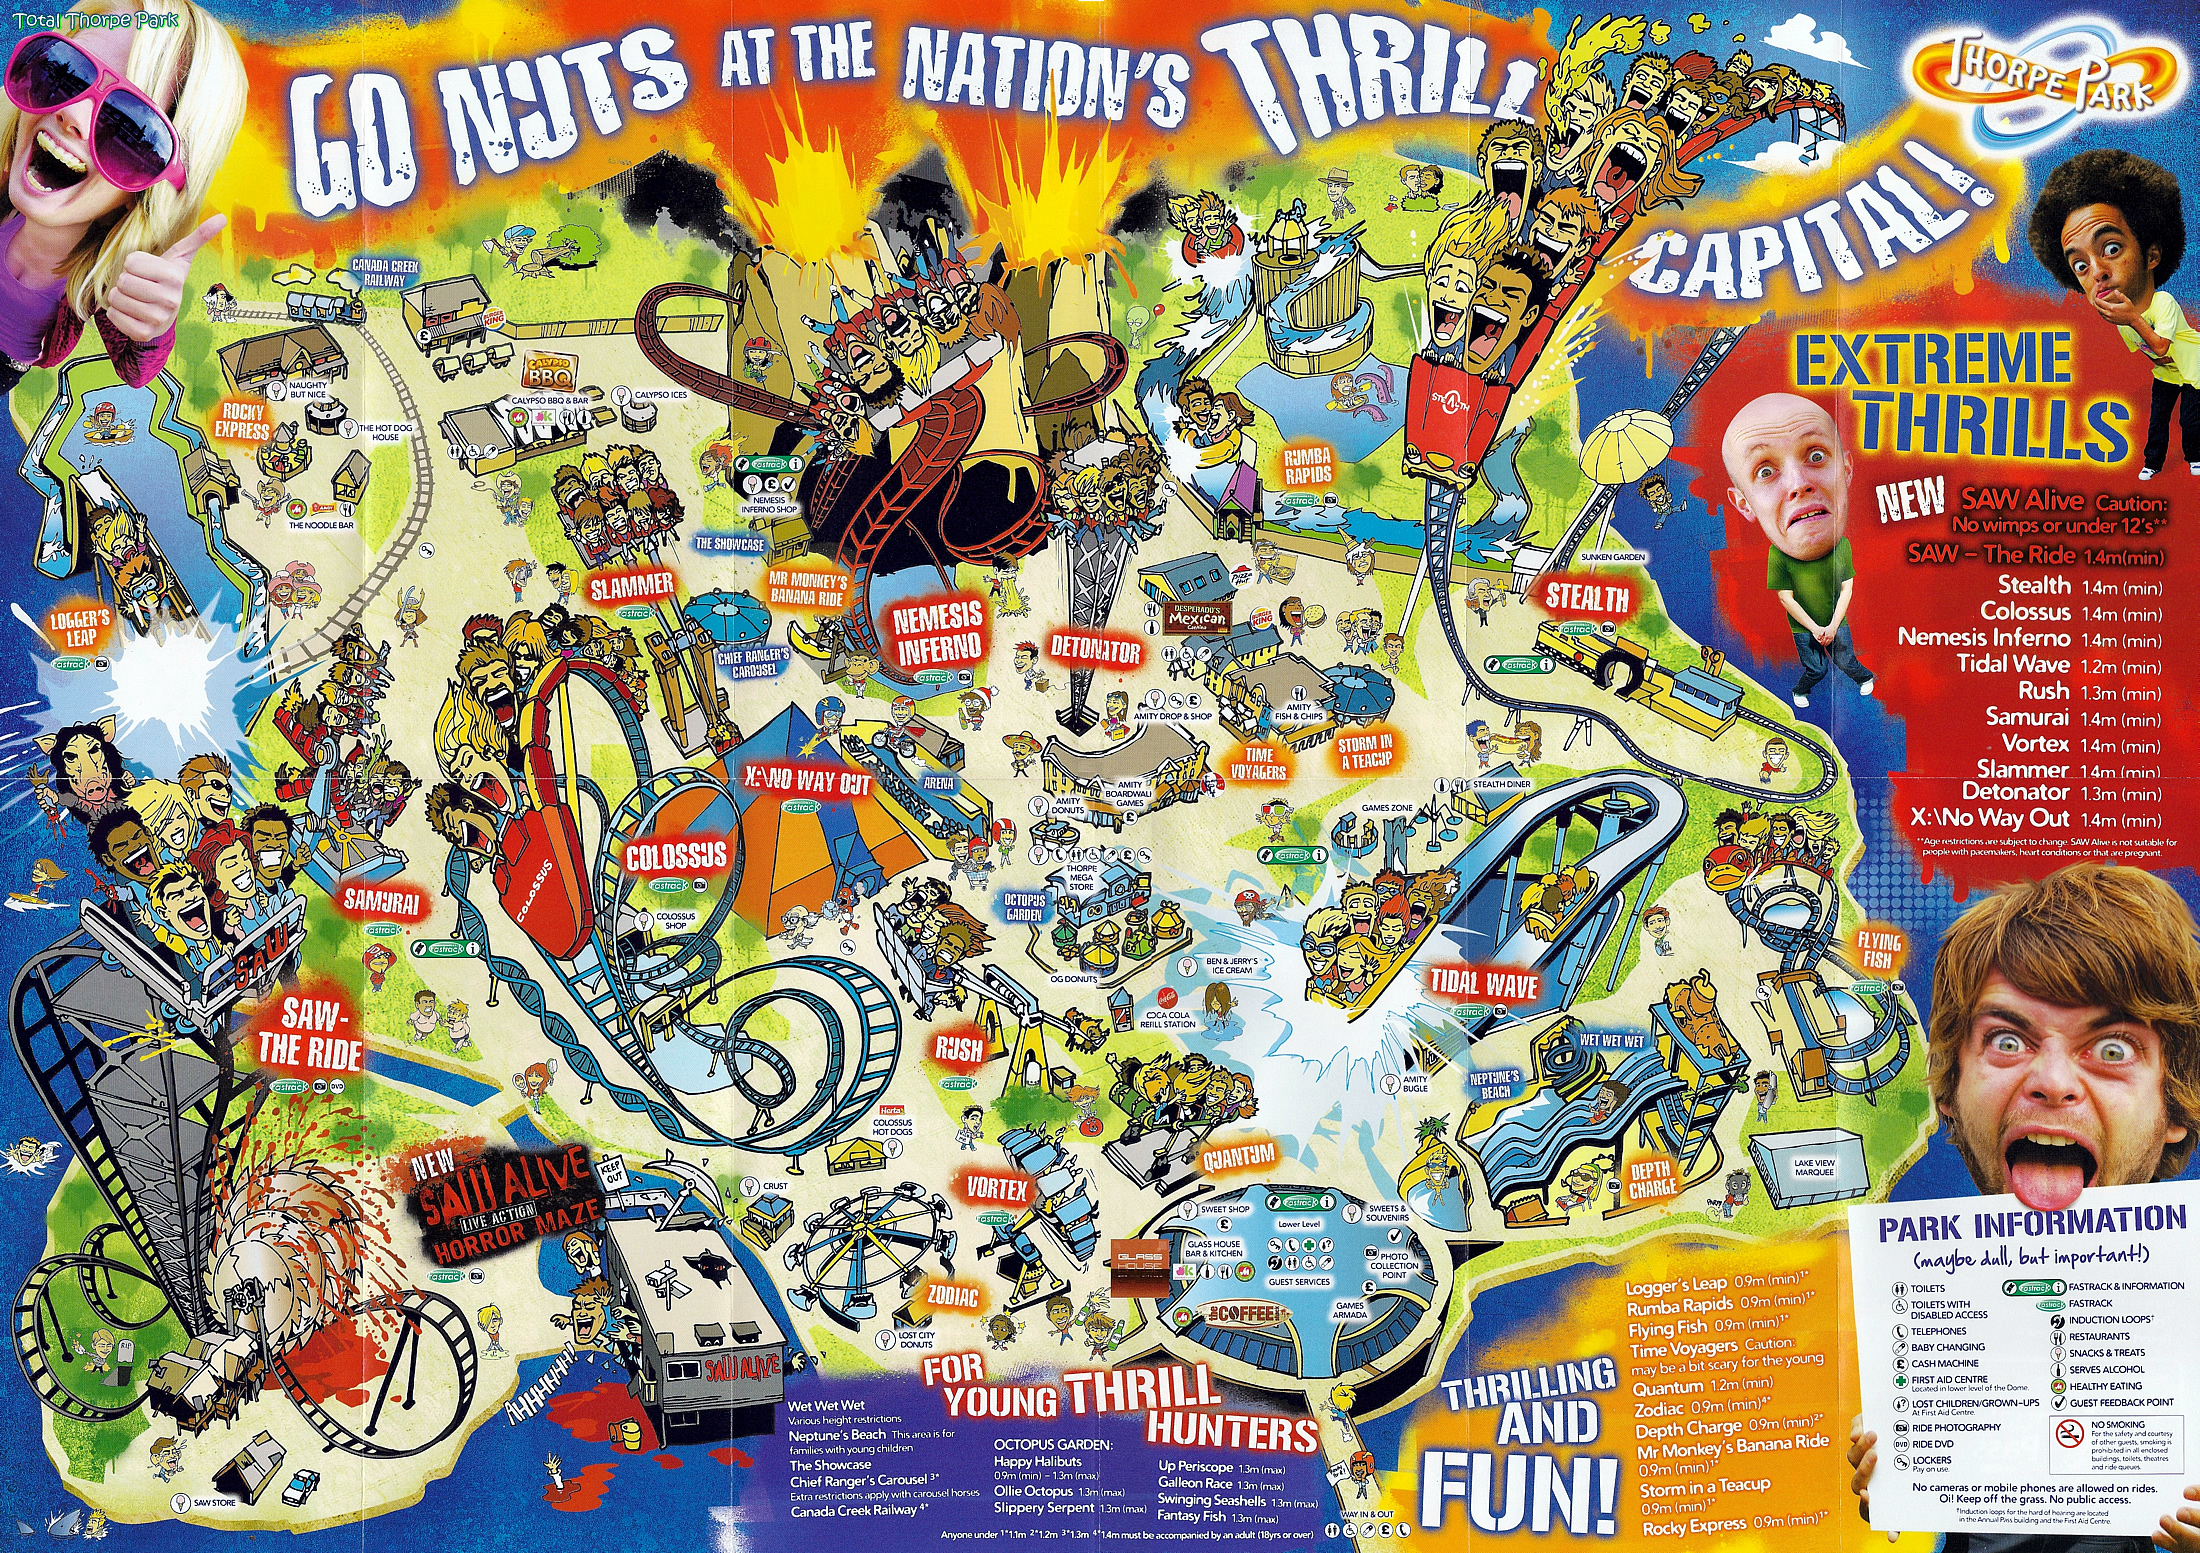 neverland ranch map with Back From The Dead Theme Park Map Day on 573462 as well Ed Sheeran Tattoos additionally Michael Jackson Neverland Ranch 100m Article 1 also Neverland Ranch additionally Back From The Dead Theme Park Map Day.